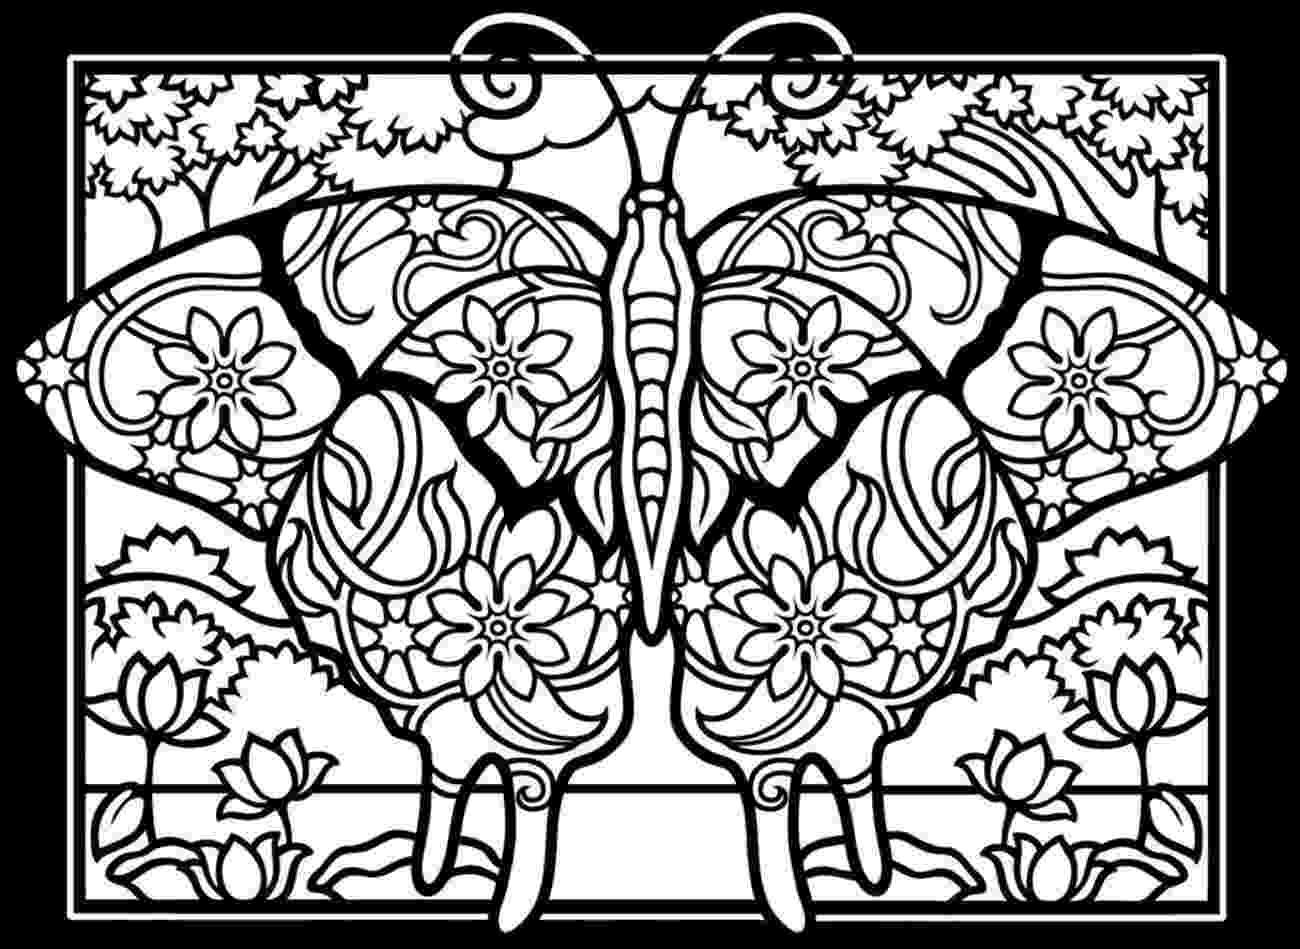 black and white coloring pages for adults adult colouring pageoriginal hand drawn art in black and and adults white coloring black pages for